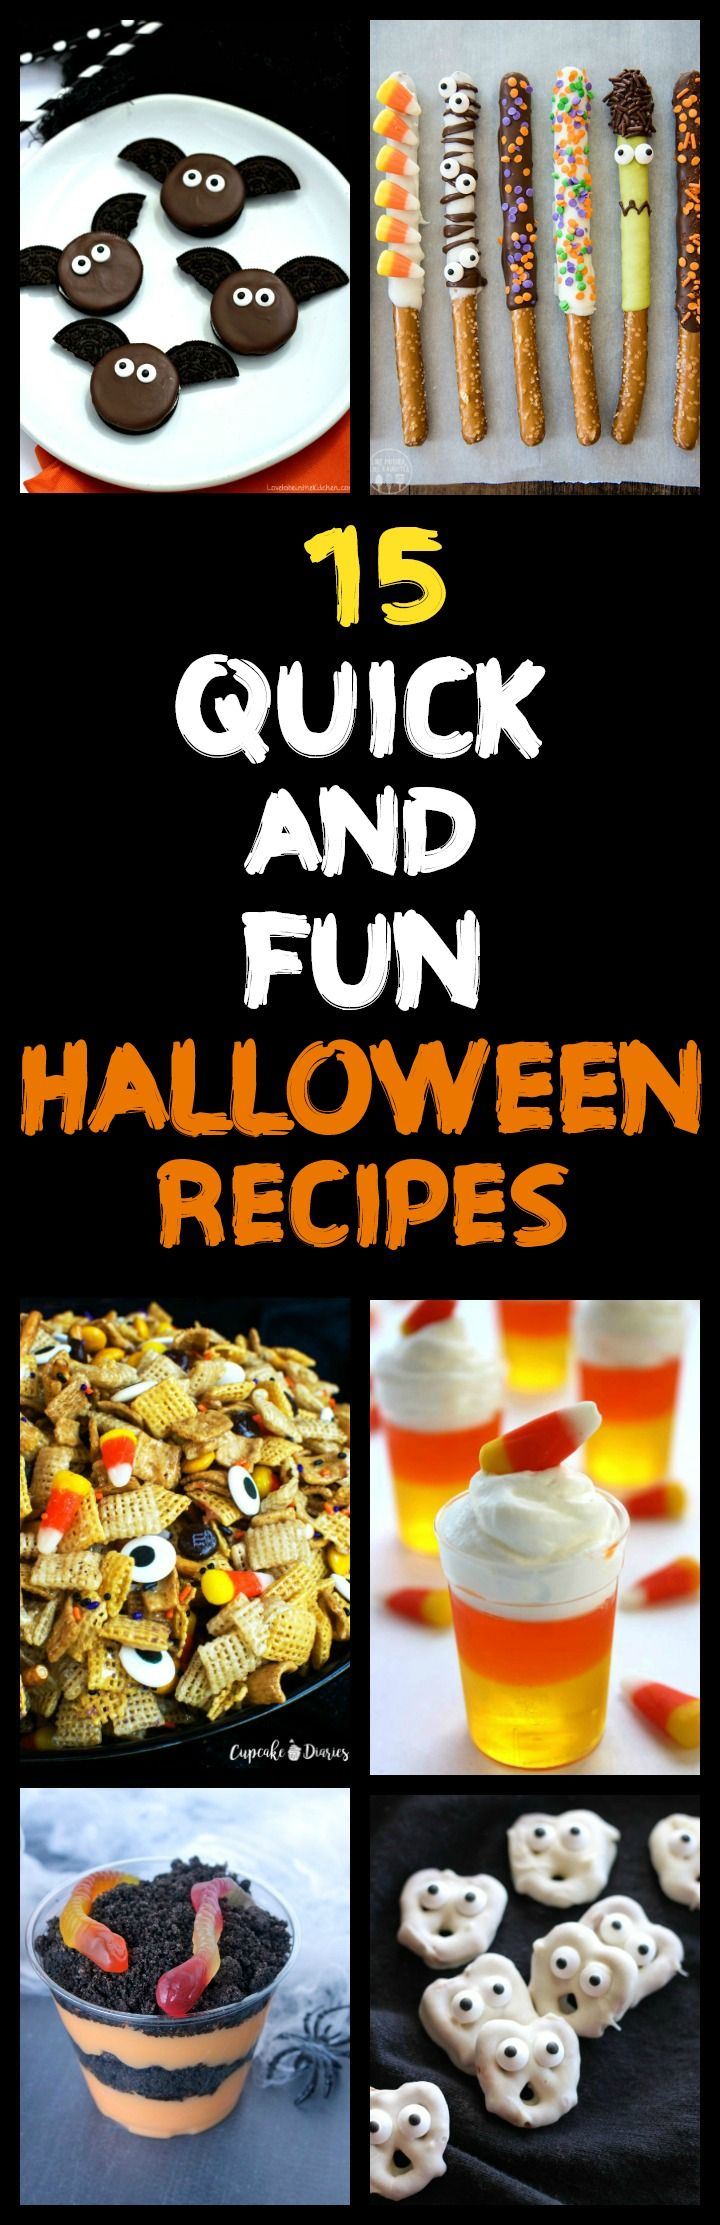 Quick and Fun Halloween Recipes- 15 spooktacular recipes that are easy and fast to make! No baking involved!